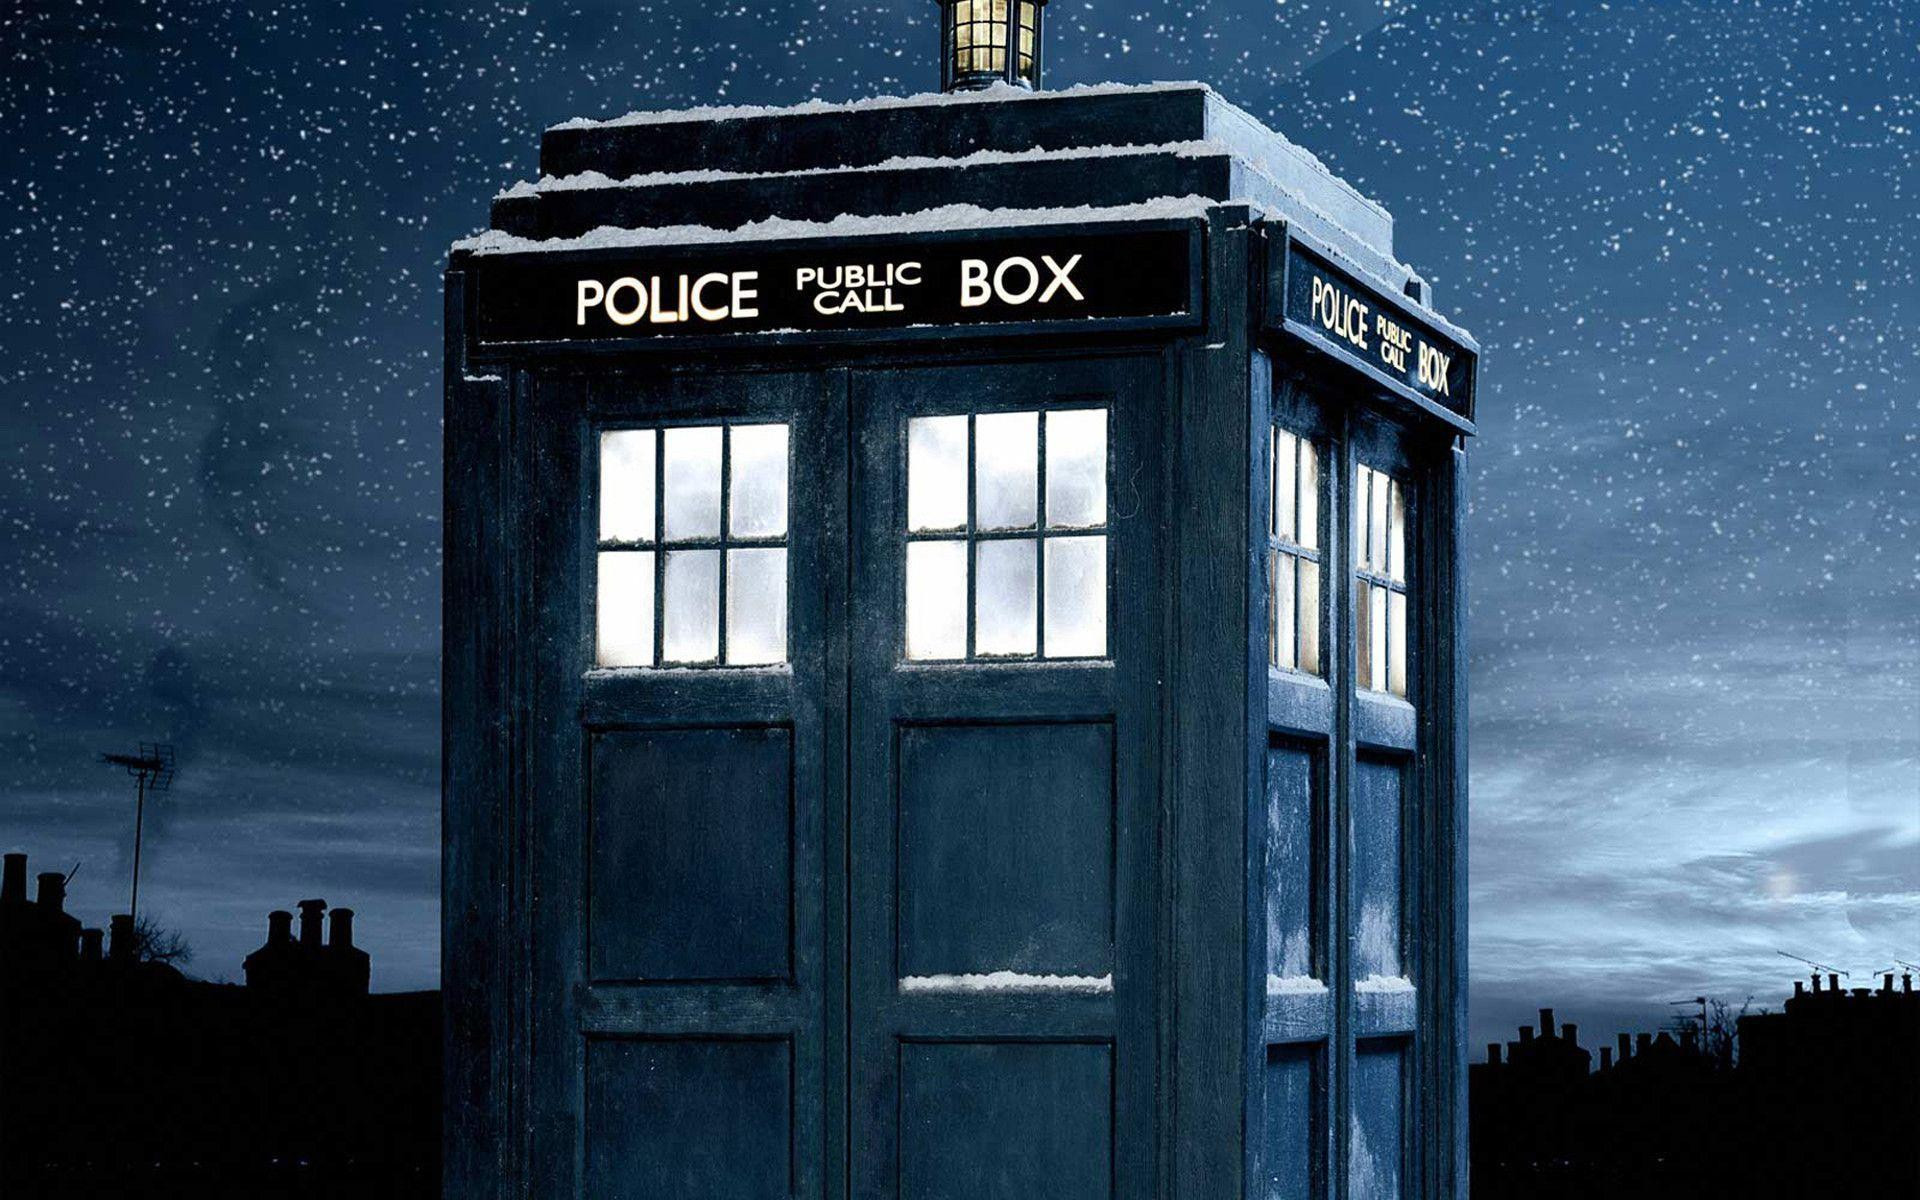 tardis images hd wallpaper - photo #10